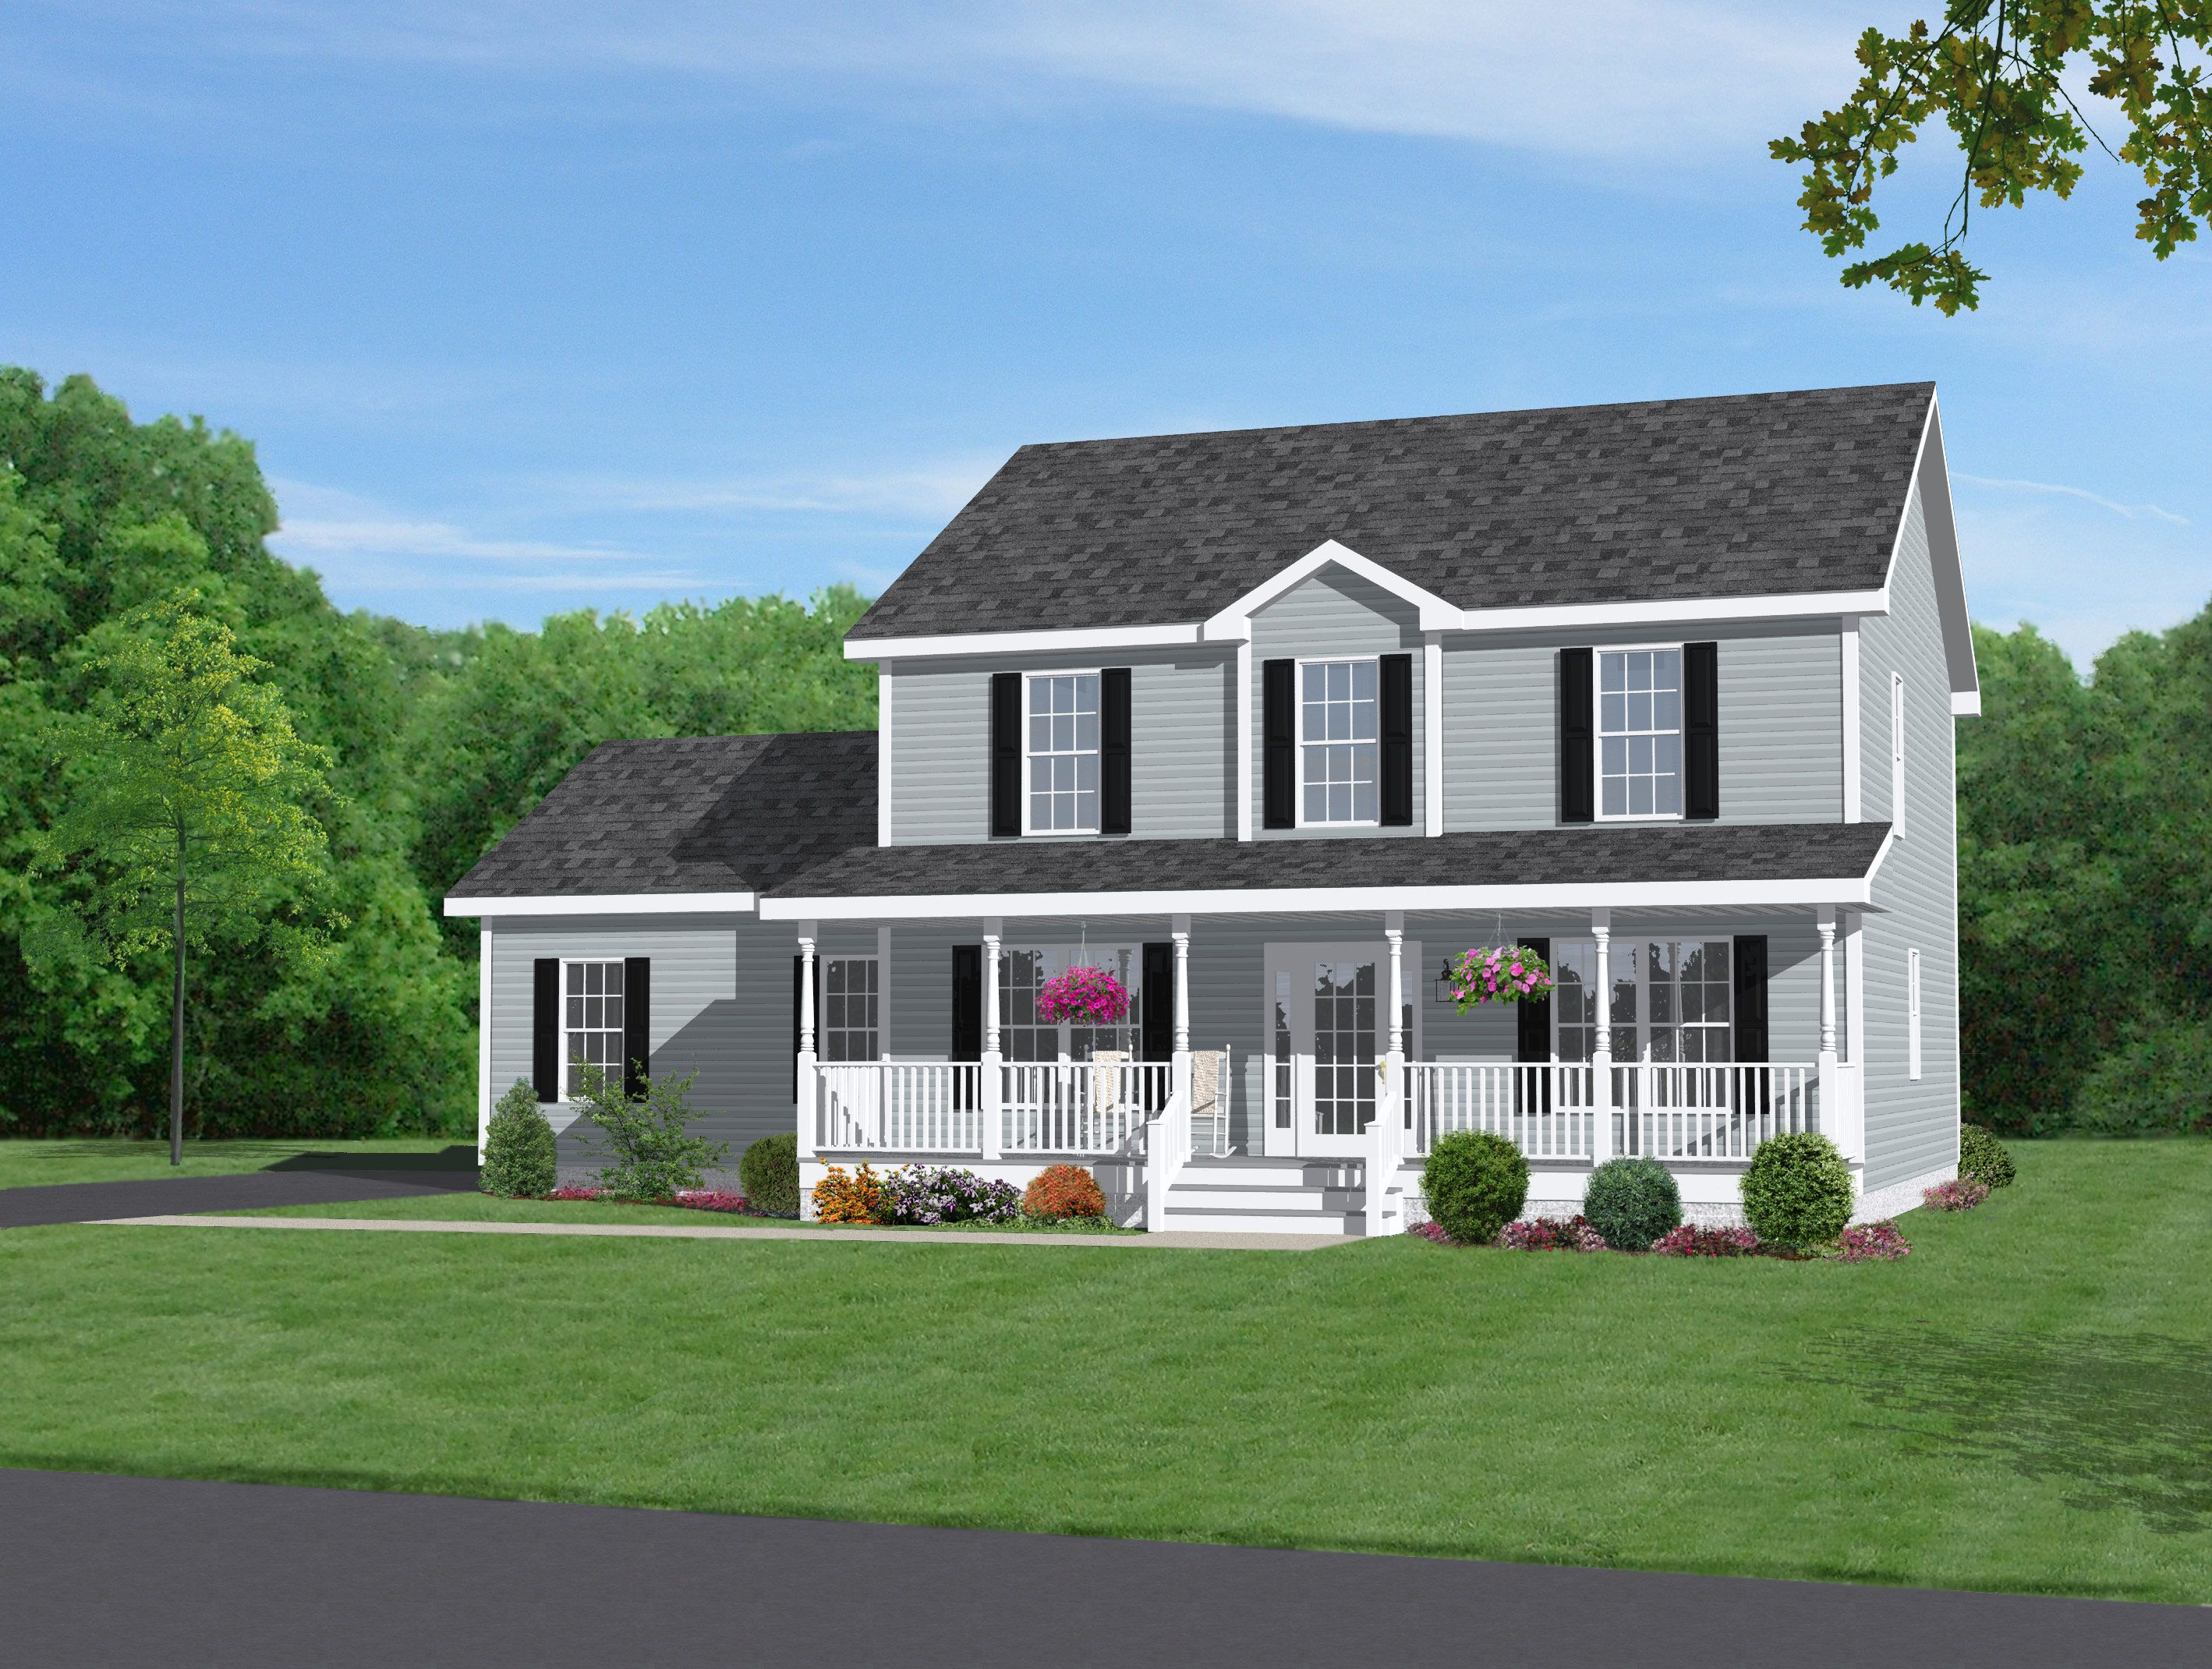 Two story home with beautiful front porch dream home for Simple two story house